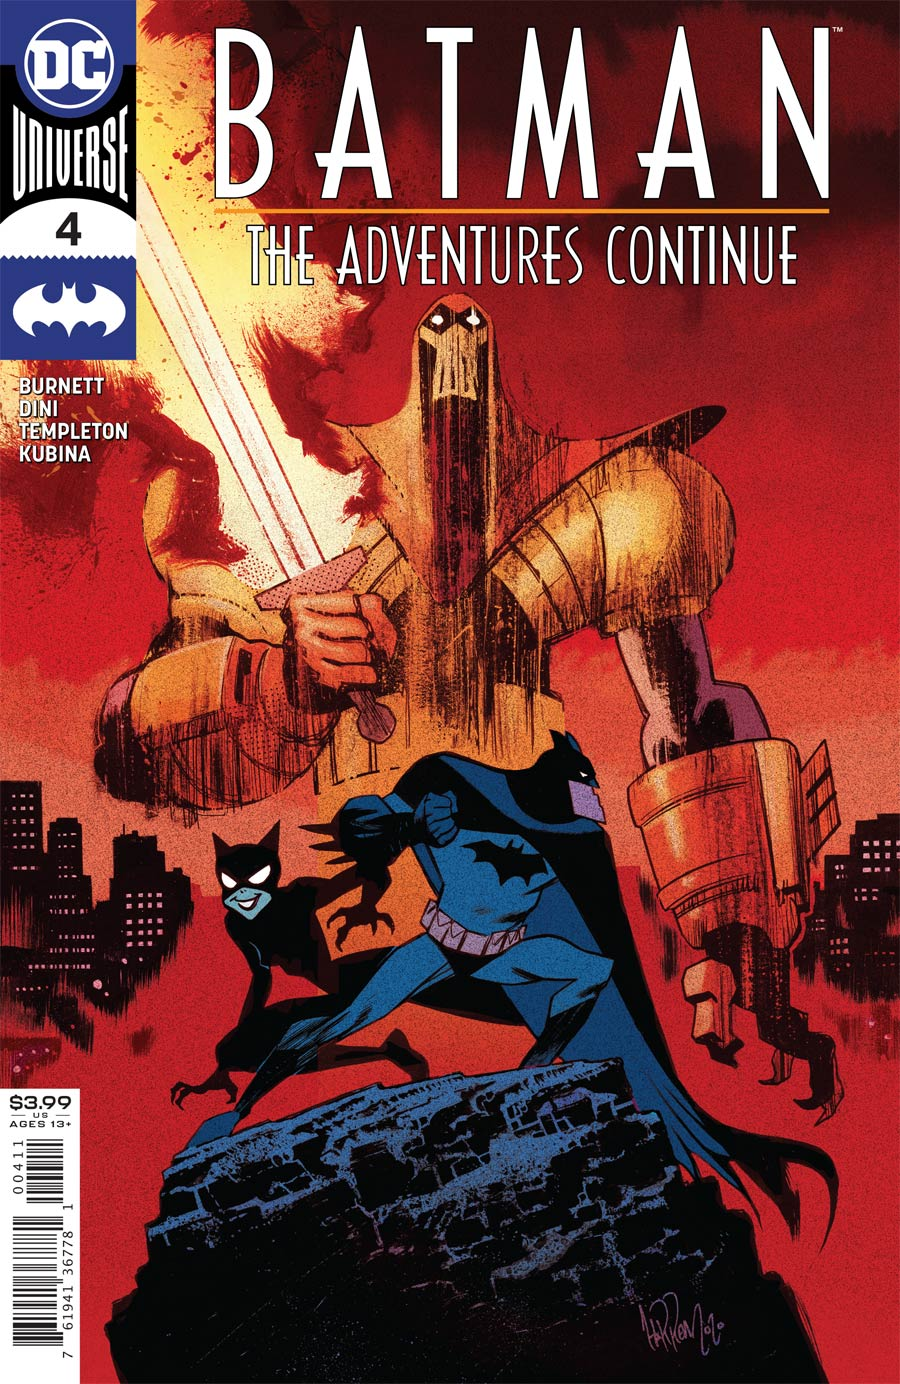 Batman The Adventures Continue #4 Cover A Regular James Harren Cover